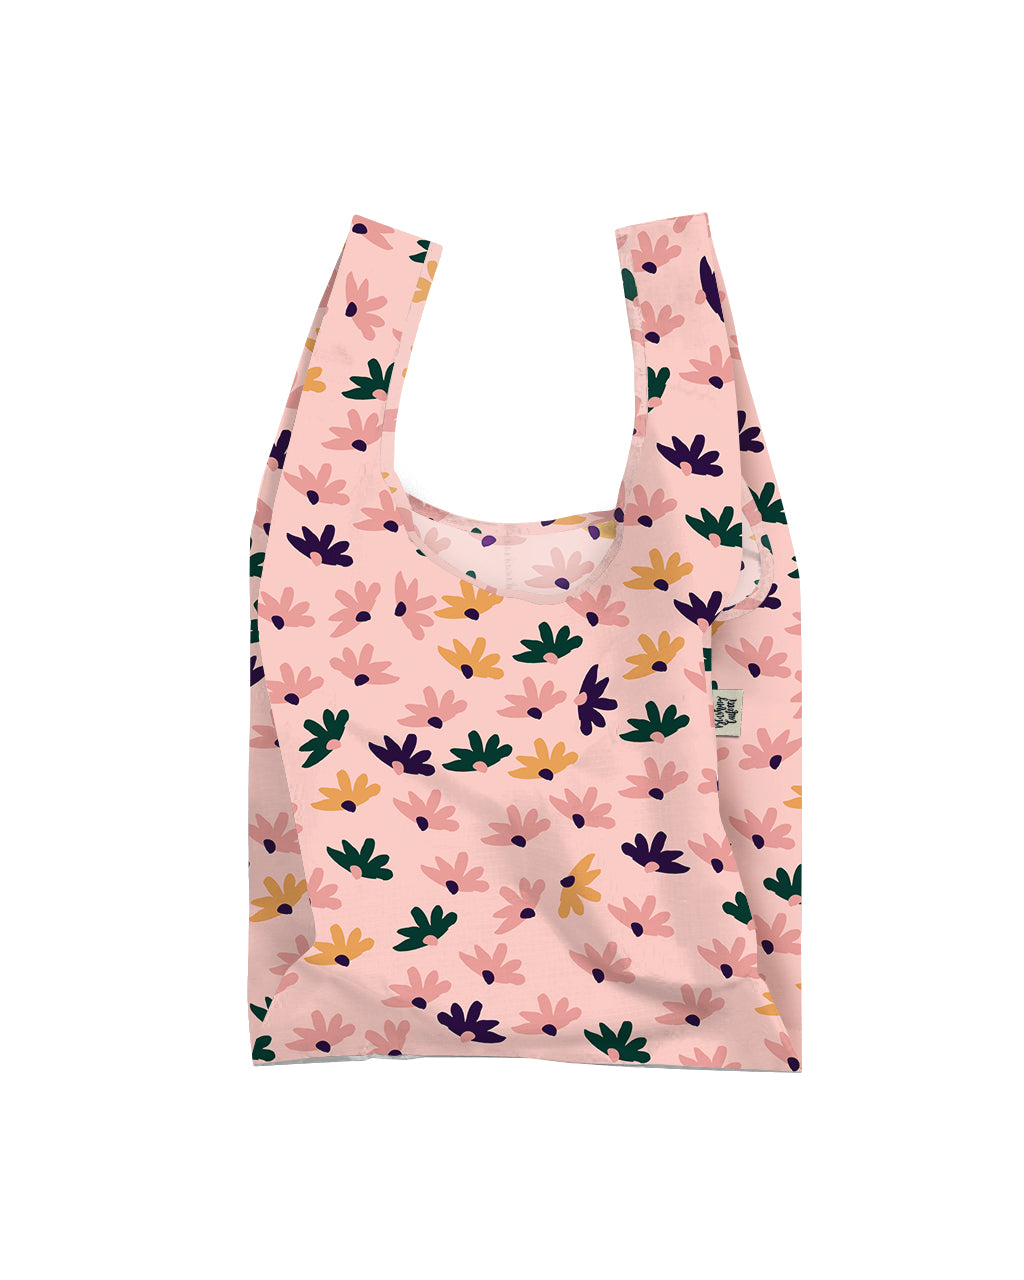 Sweet Daisy Reusable Shopping Bag, Lifestyle, Blushing Confetti - 3LittlePicks